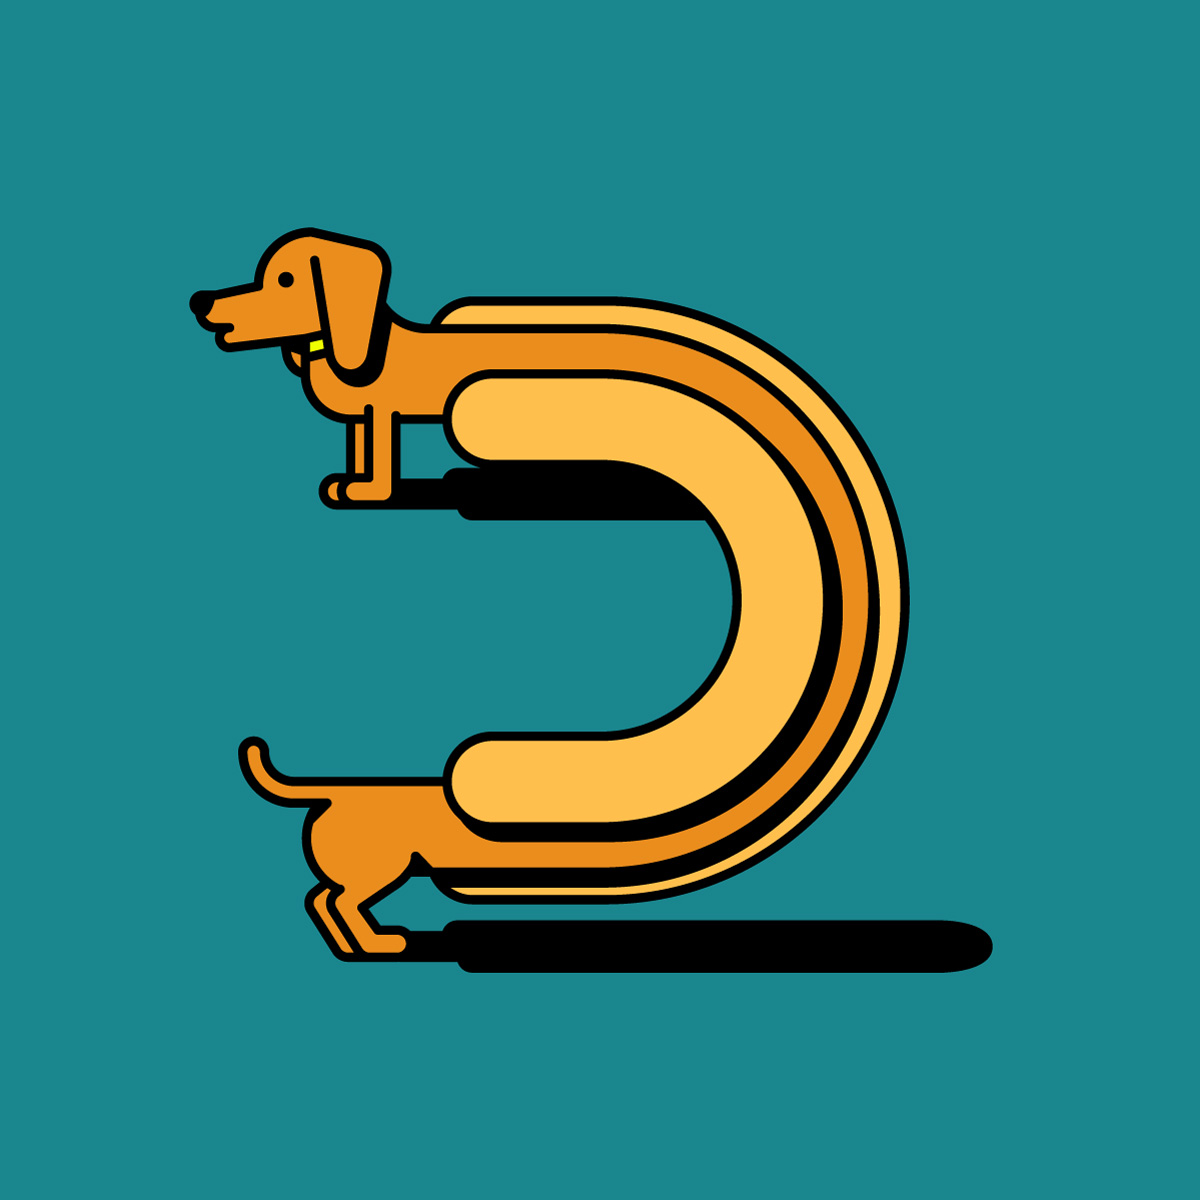 Illustration of the letter D imagined as a hot dog